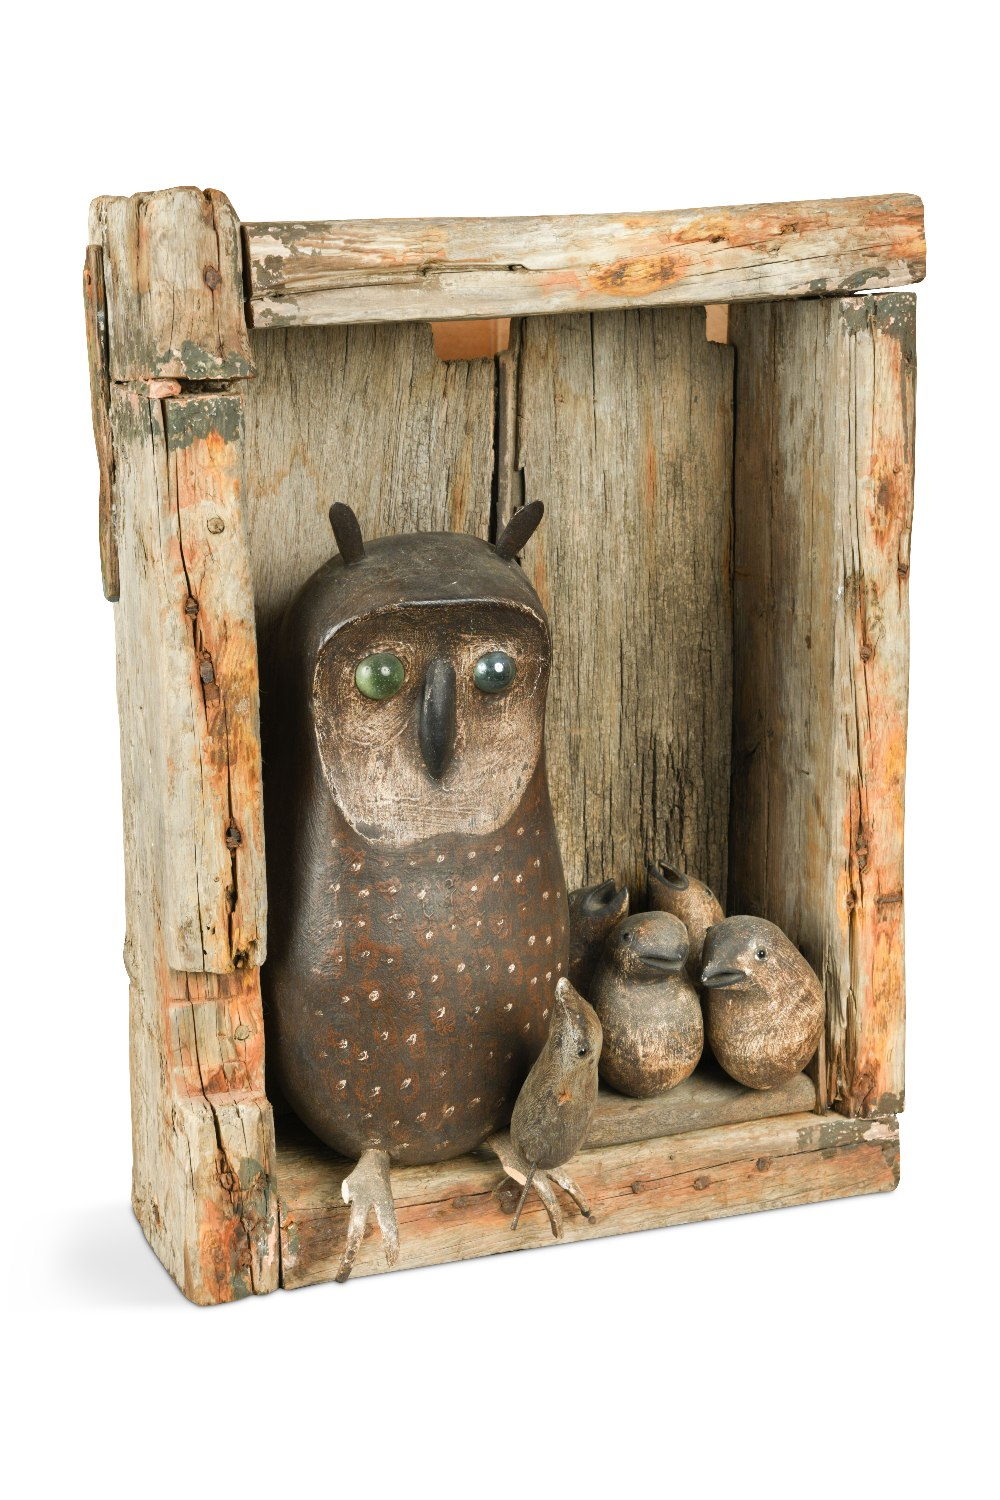 Lot 246 - In the manner of Guy Taplin, a carved and painted wood model of an Owl feeding her chicks, set in an